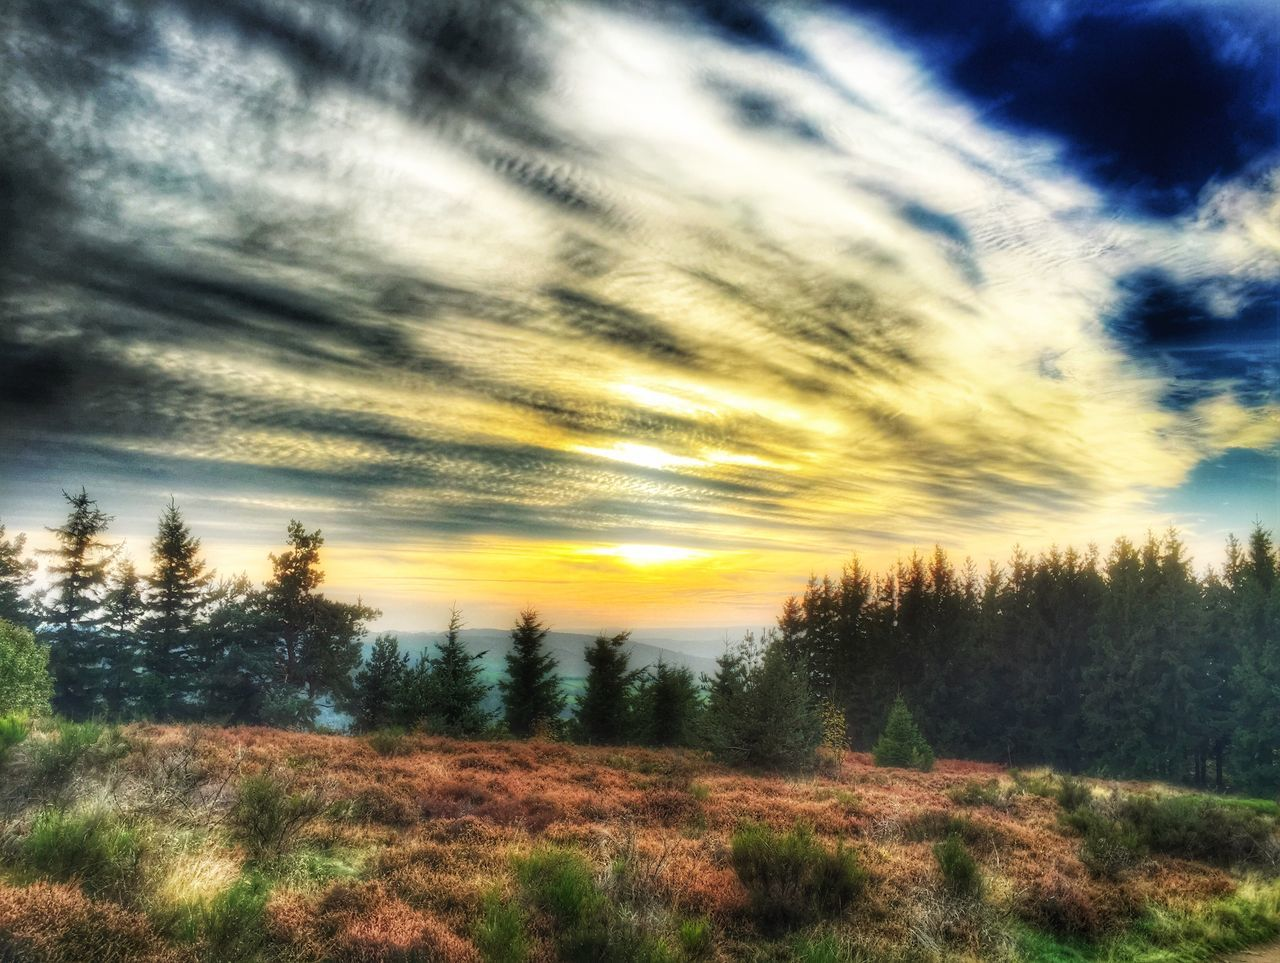 nature, scenics, tranquil scene, tranquility, beauty in nature, tree, landscape, sky, cloud - sky, no people, sunset, outdoors, grass, day